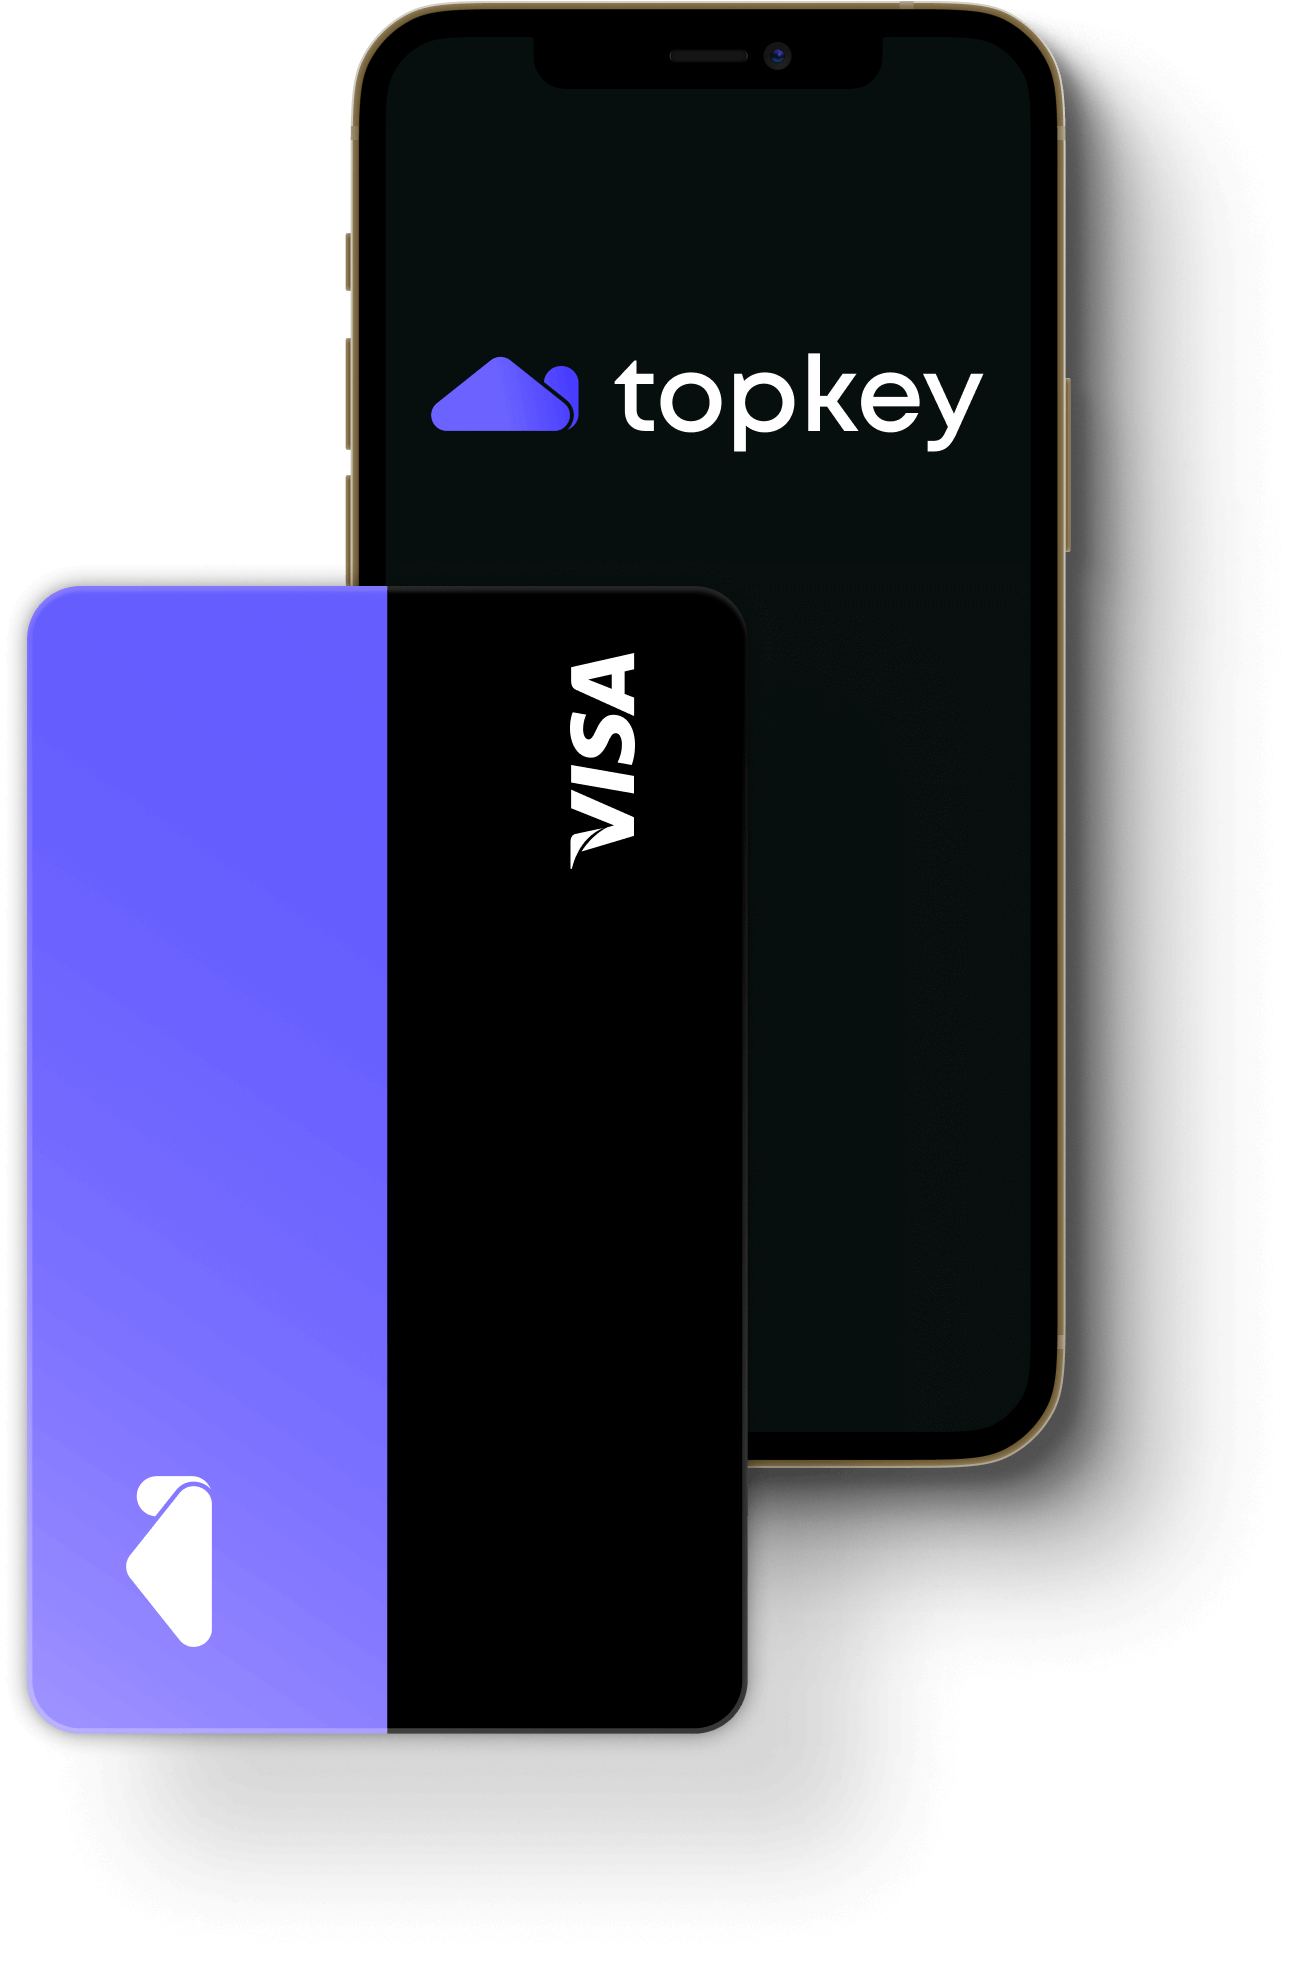 Topkey card and mobile app